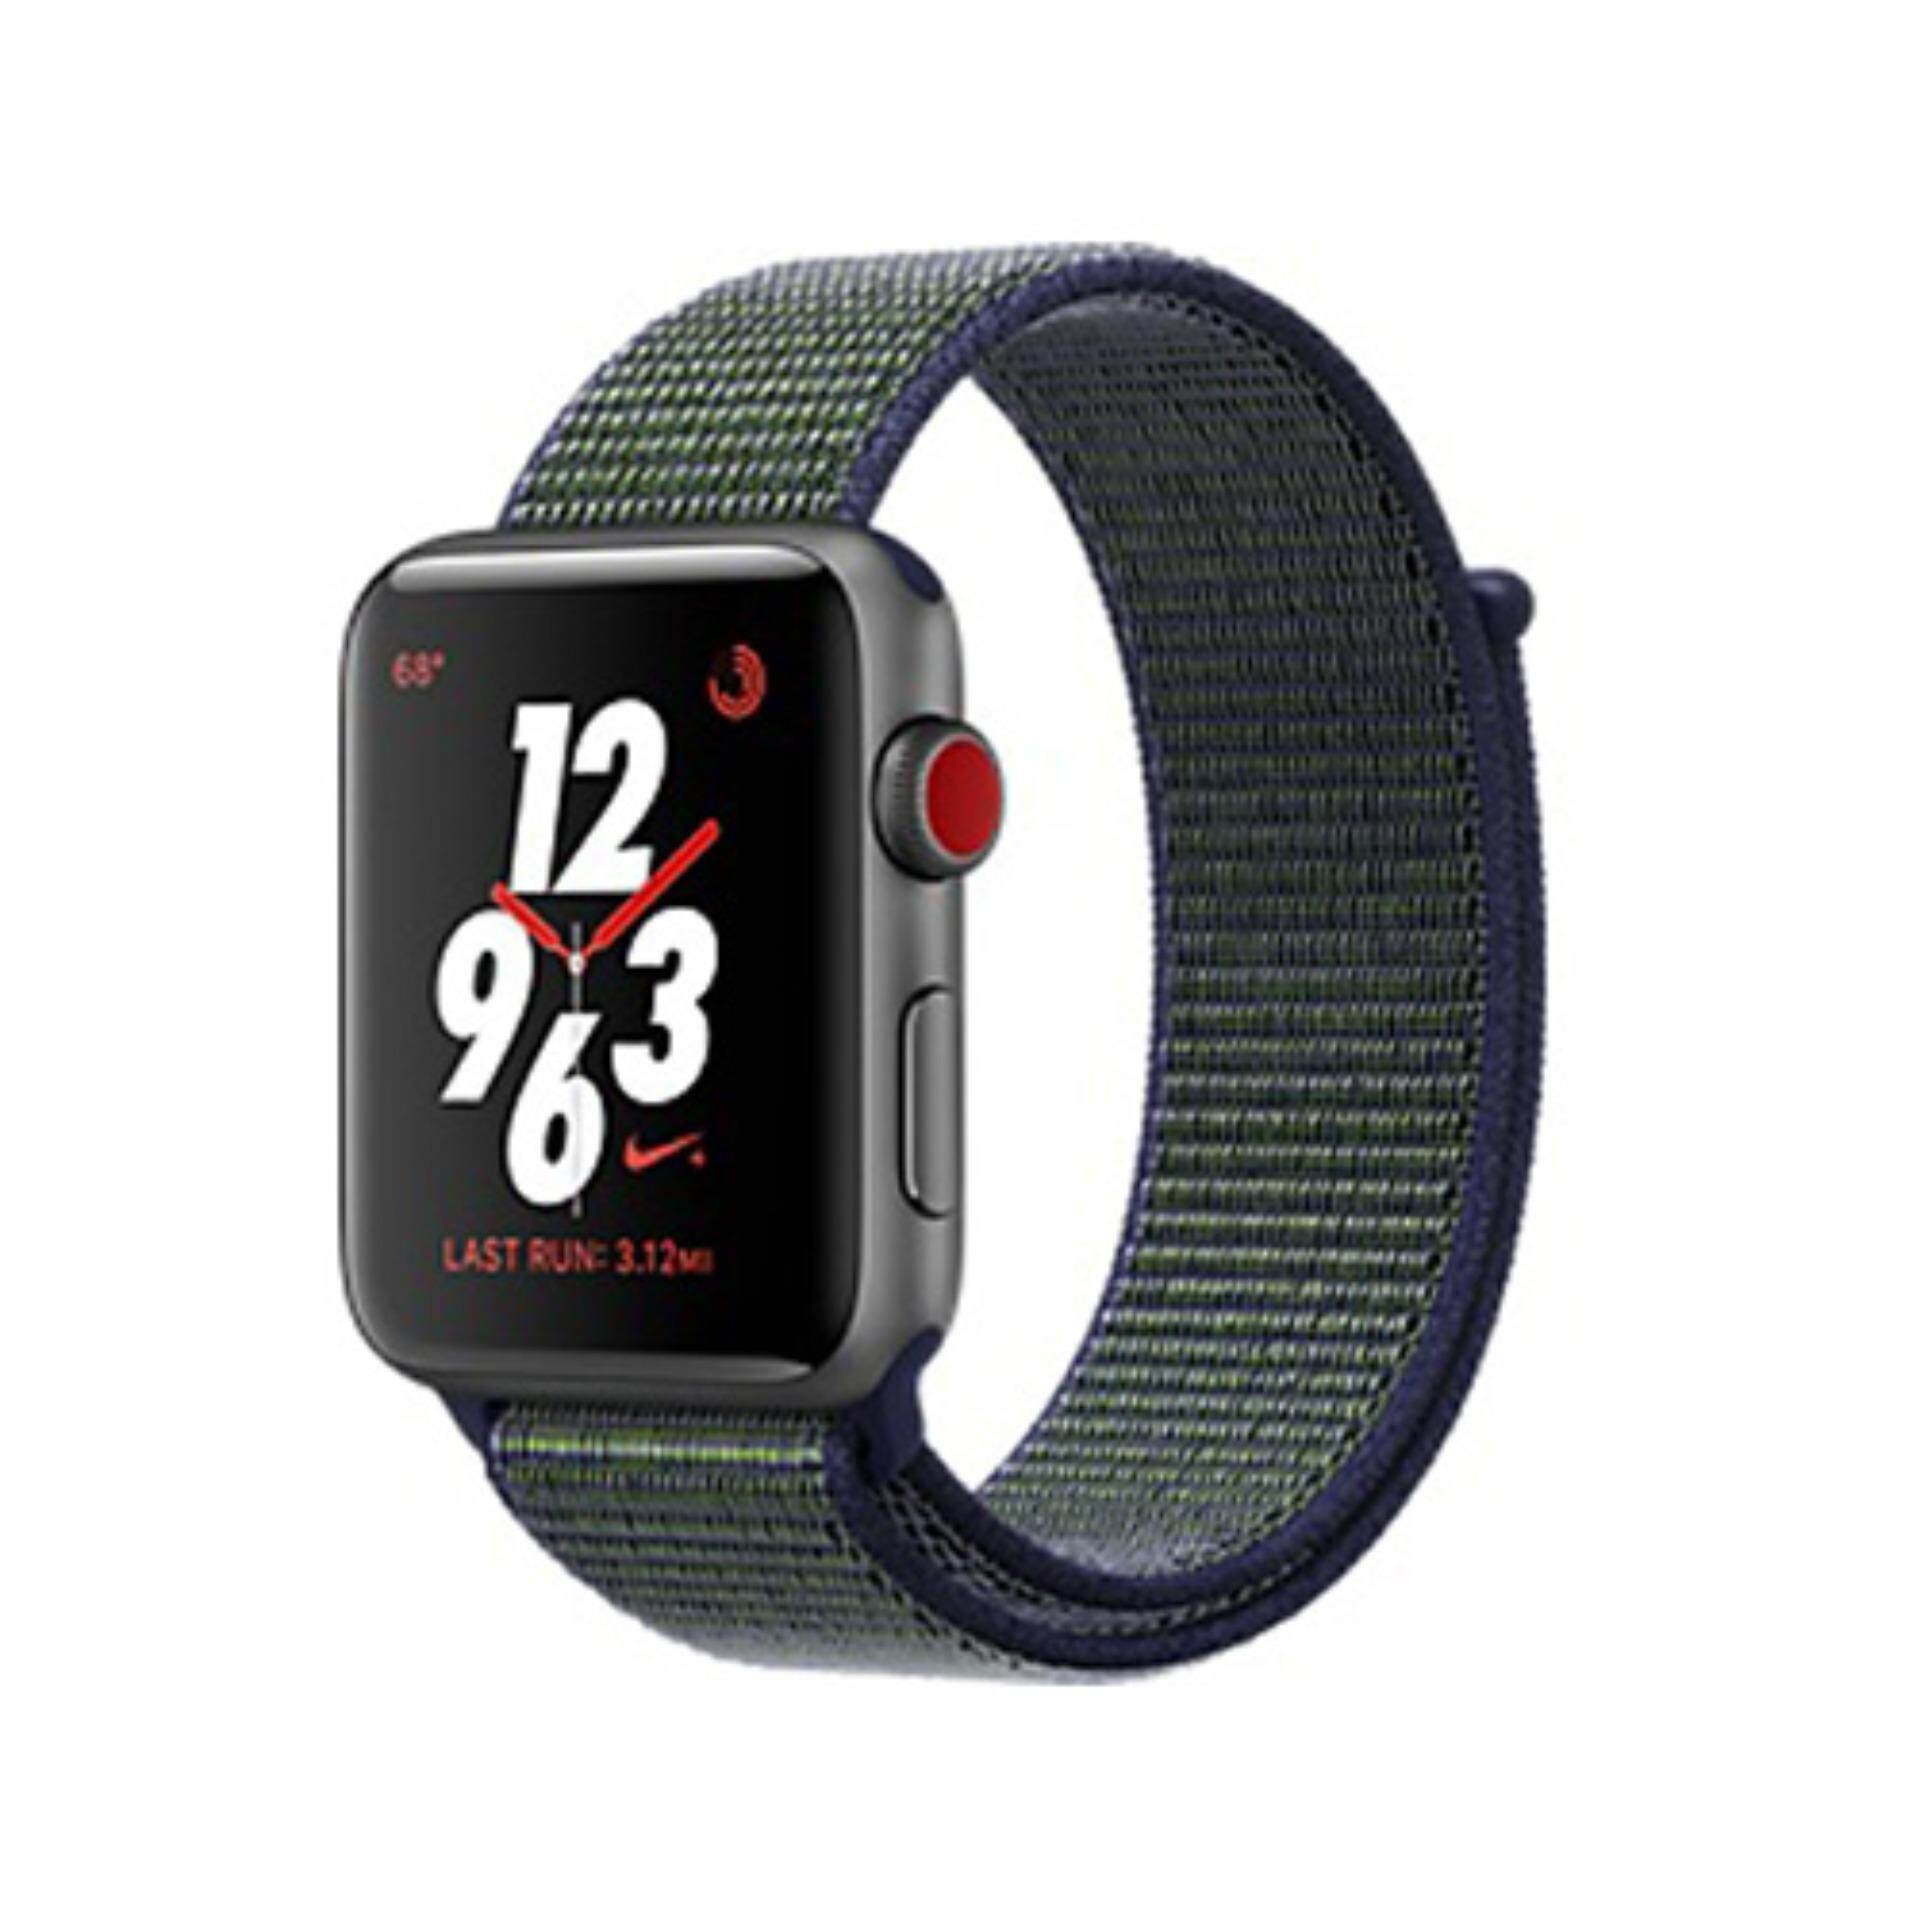 Apple Watch Nike+ GPS + Cellular, 38mm Space Grey Aluminium Case with Midnight Fog Nike Sport Loop